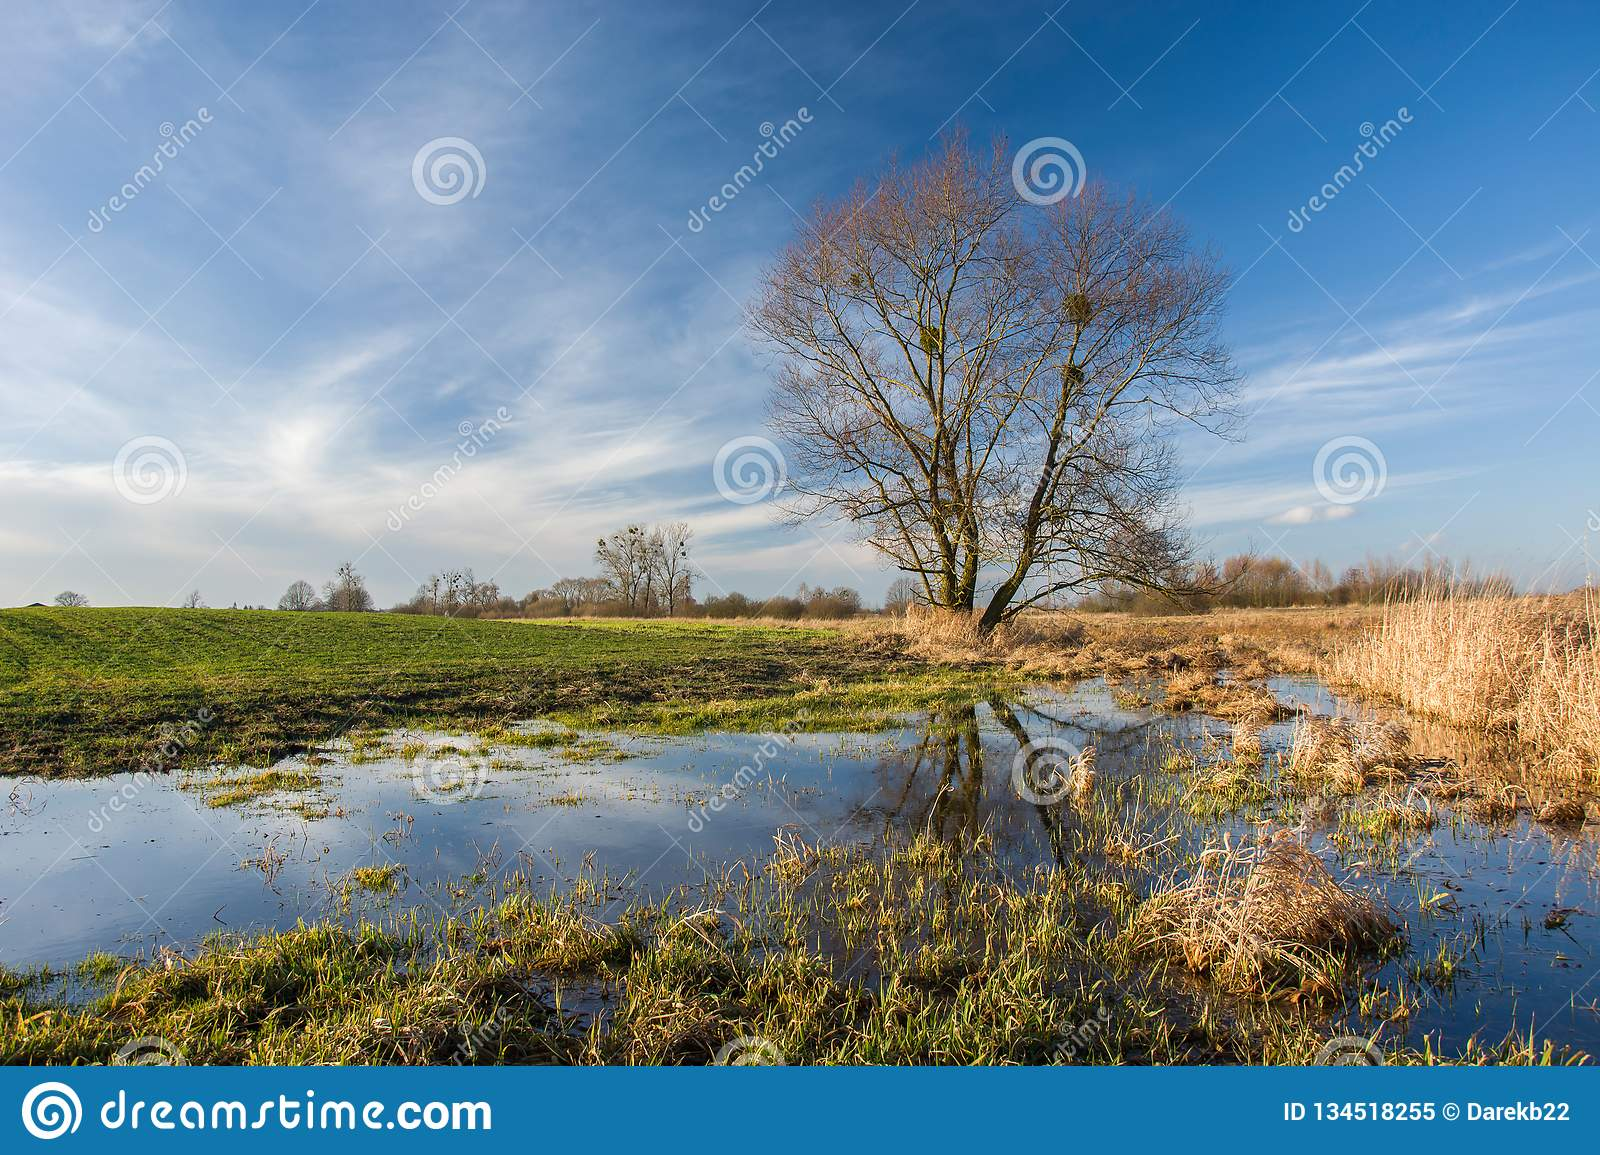 Field flooded with water and large tree